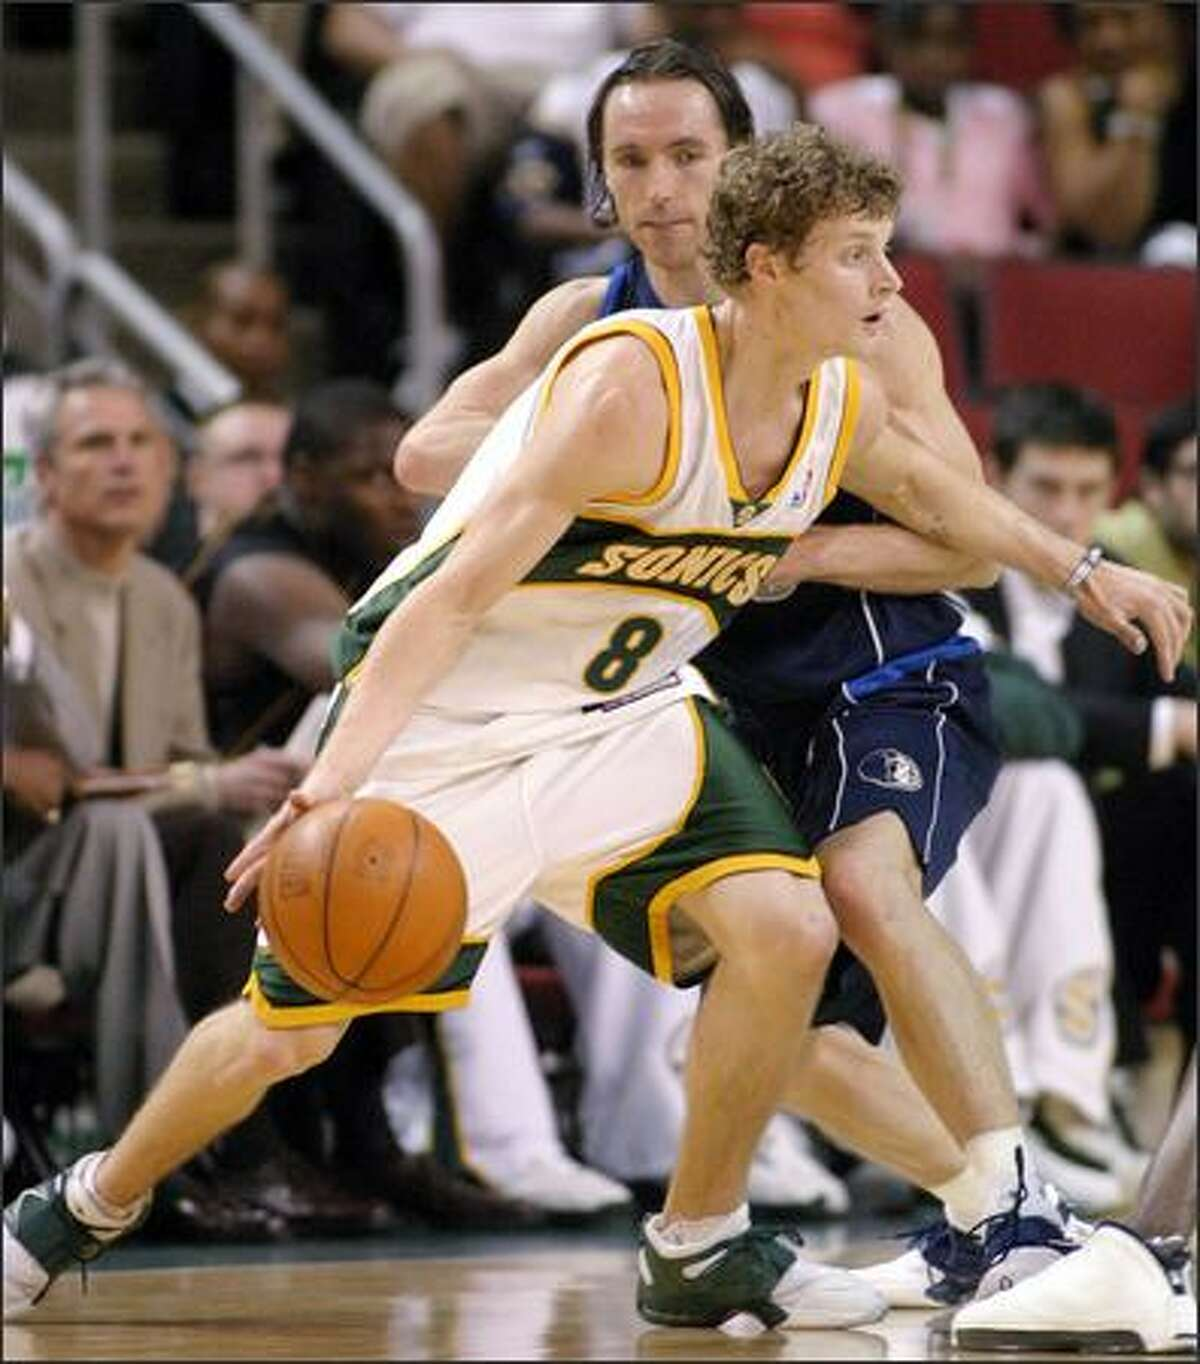 Seattle SuperSonics' Luke Ridnour drives around Dallas Mavericks' Steve Nash in the first half in Seattle, Saturday, April 10, 2004. Ridnour had 16 points and a career-high 13 assists in the Sonics' 119-99 win. (AP Photo/John Froschauer)